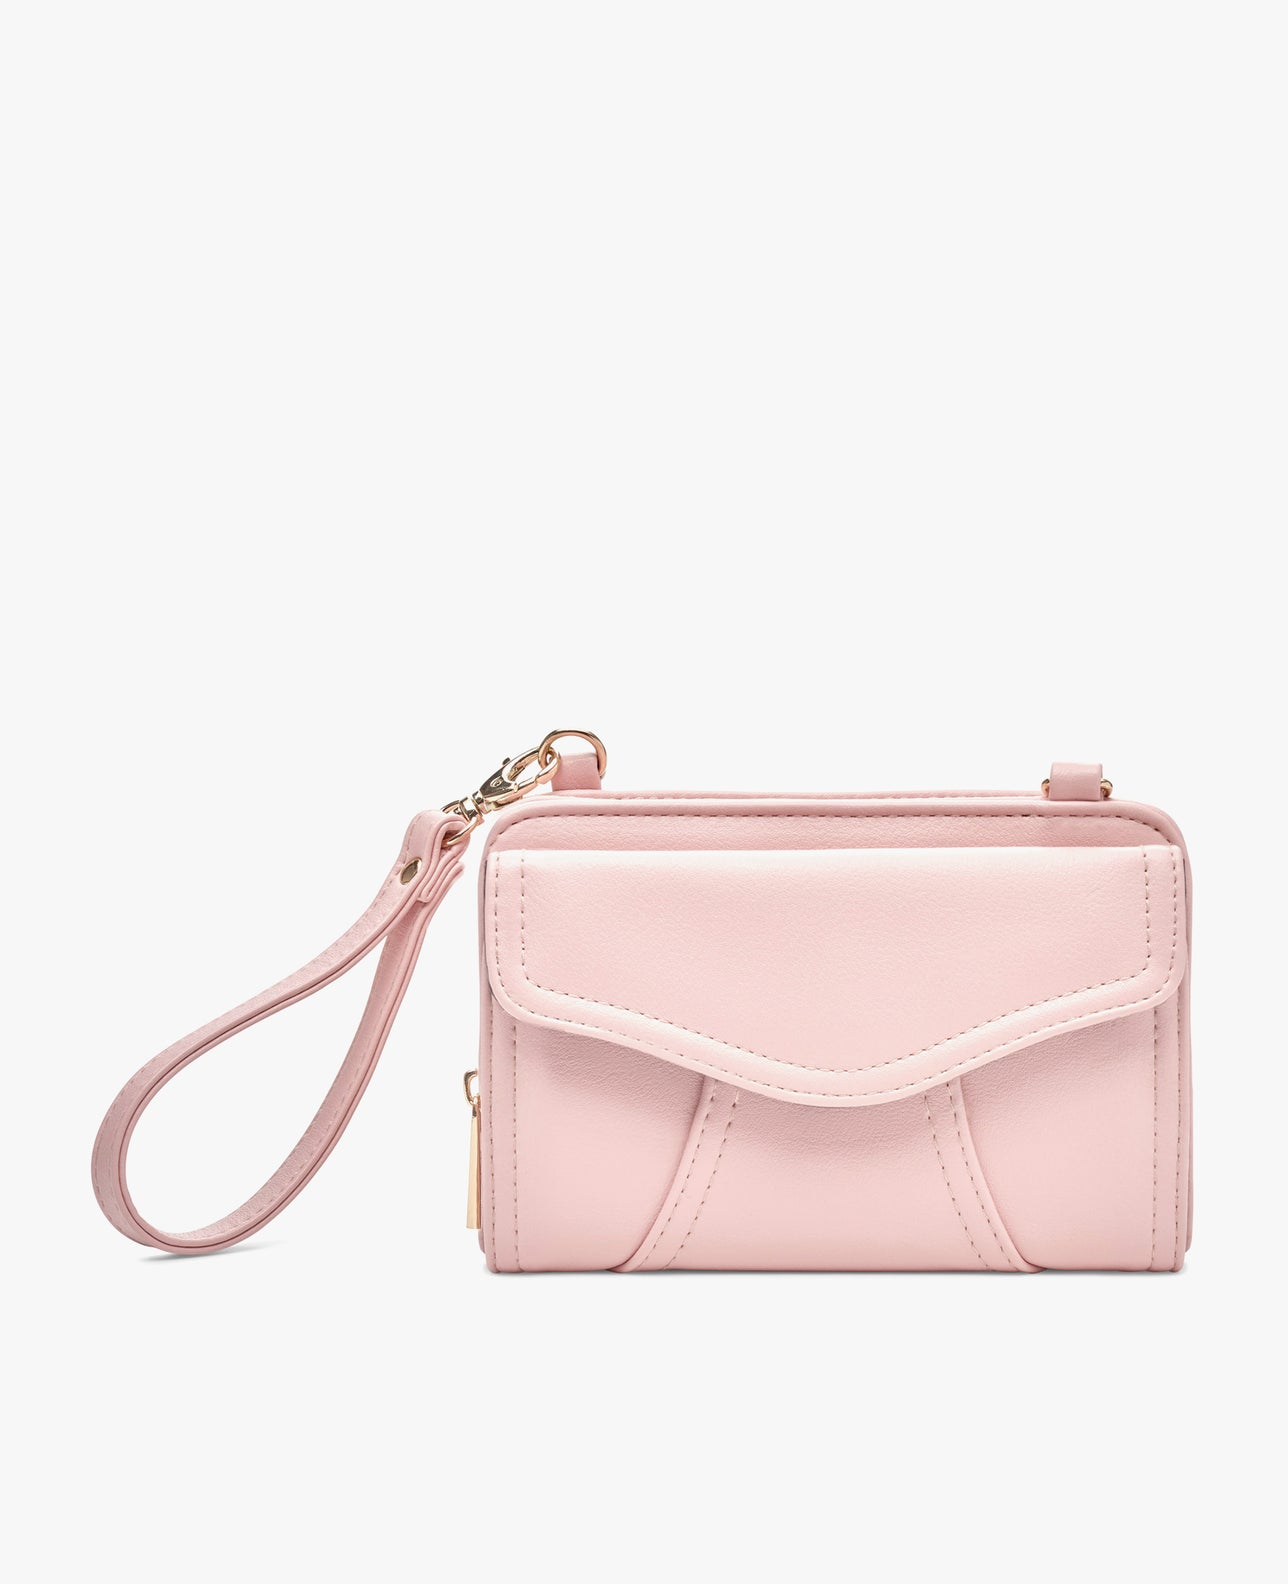 color:blush